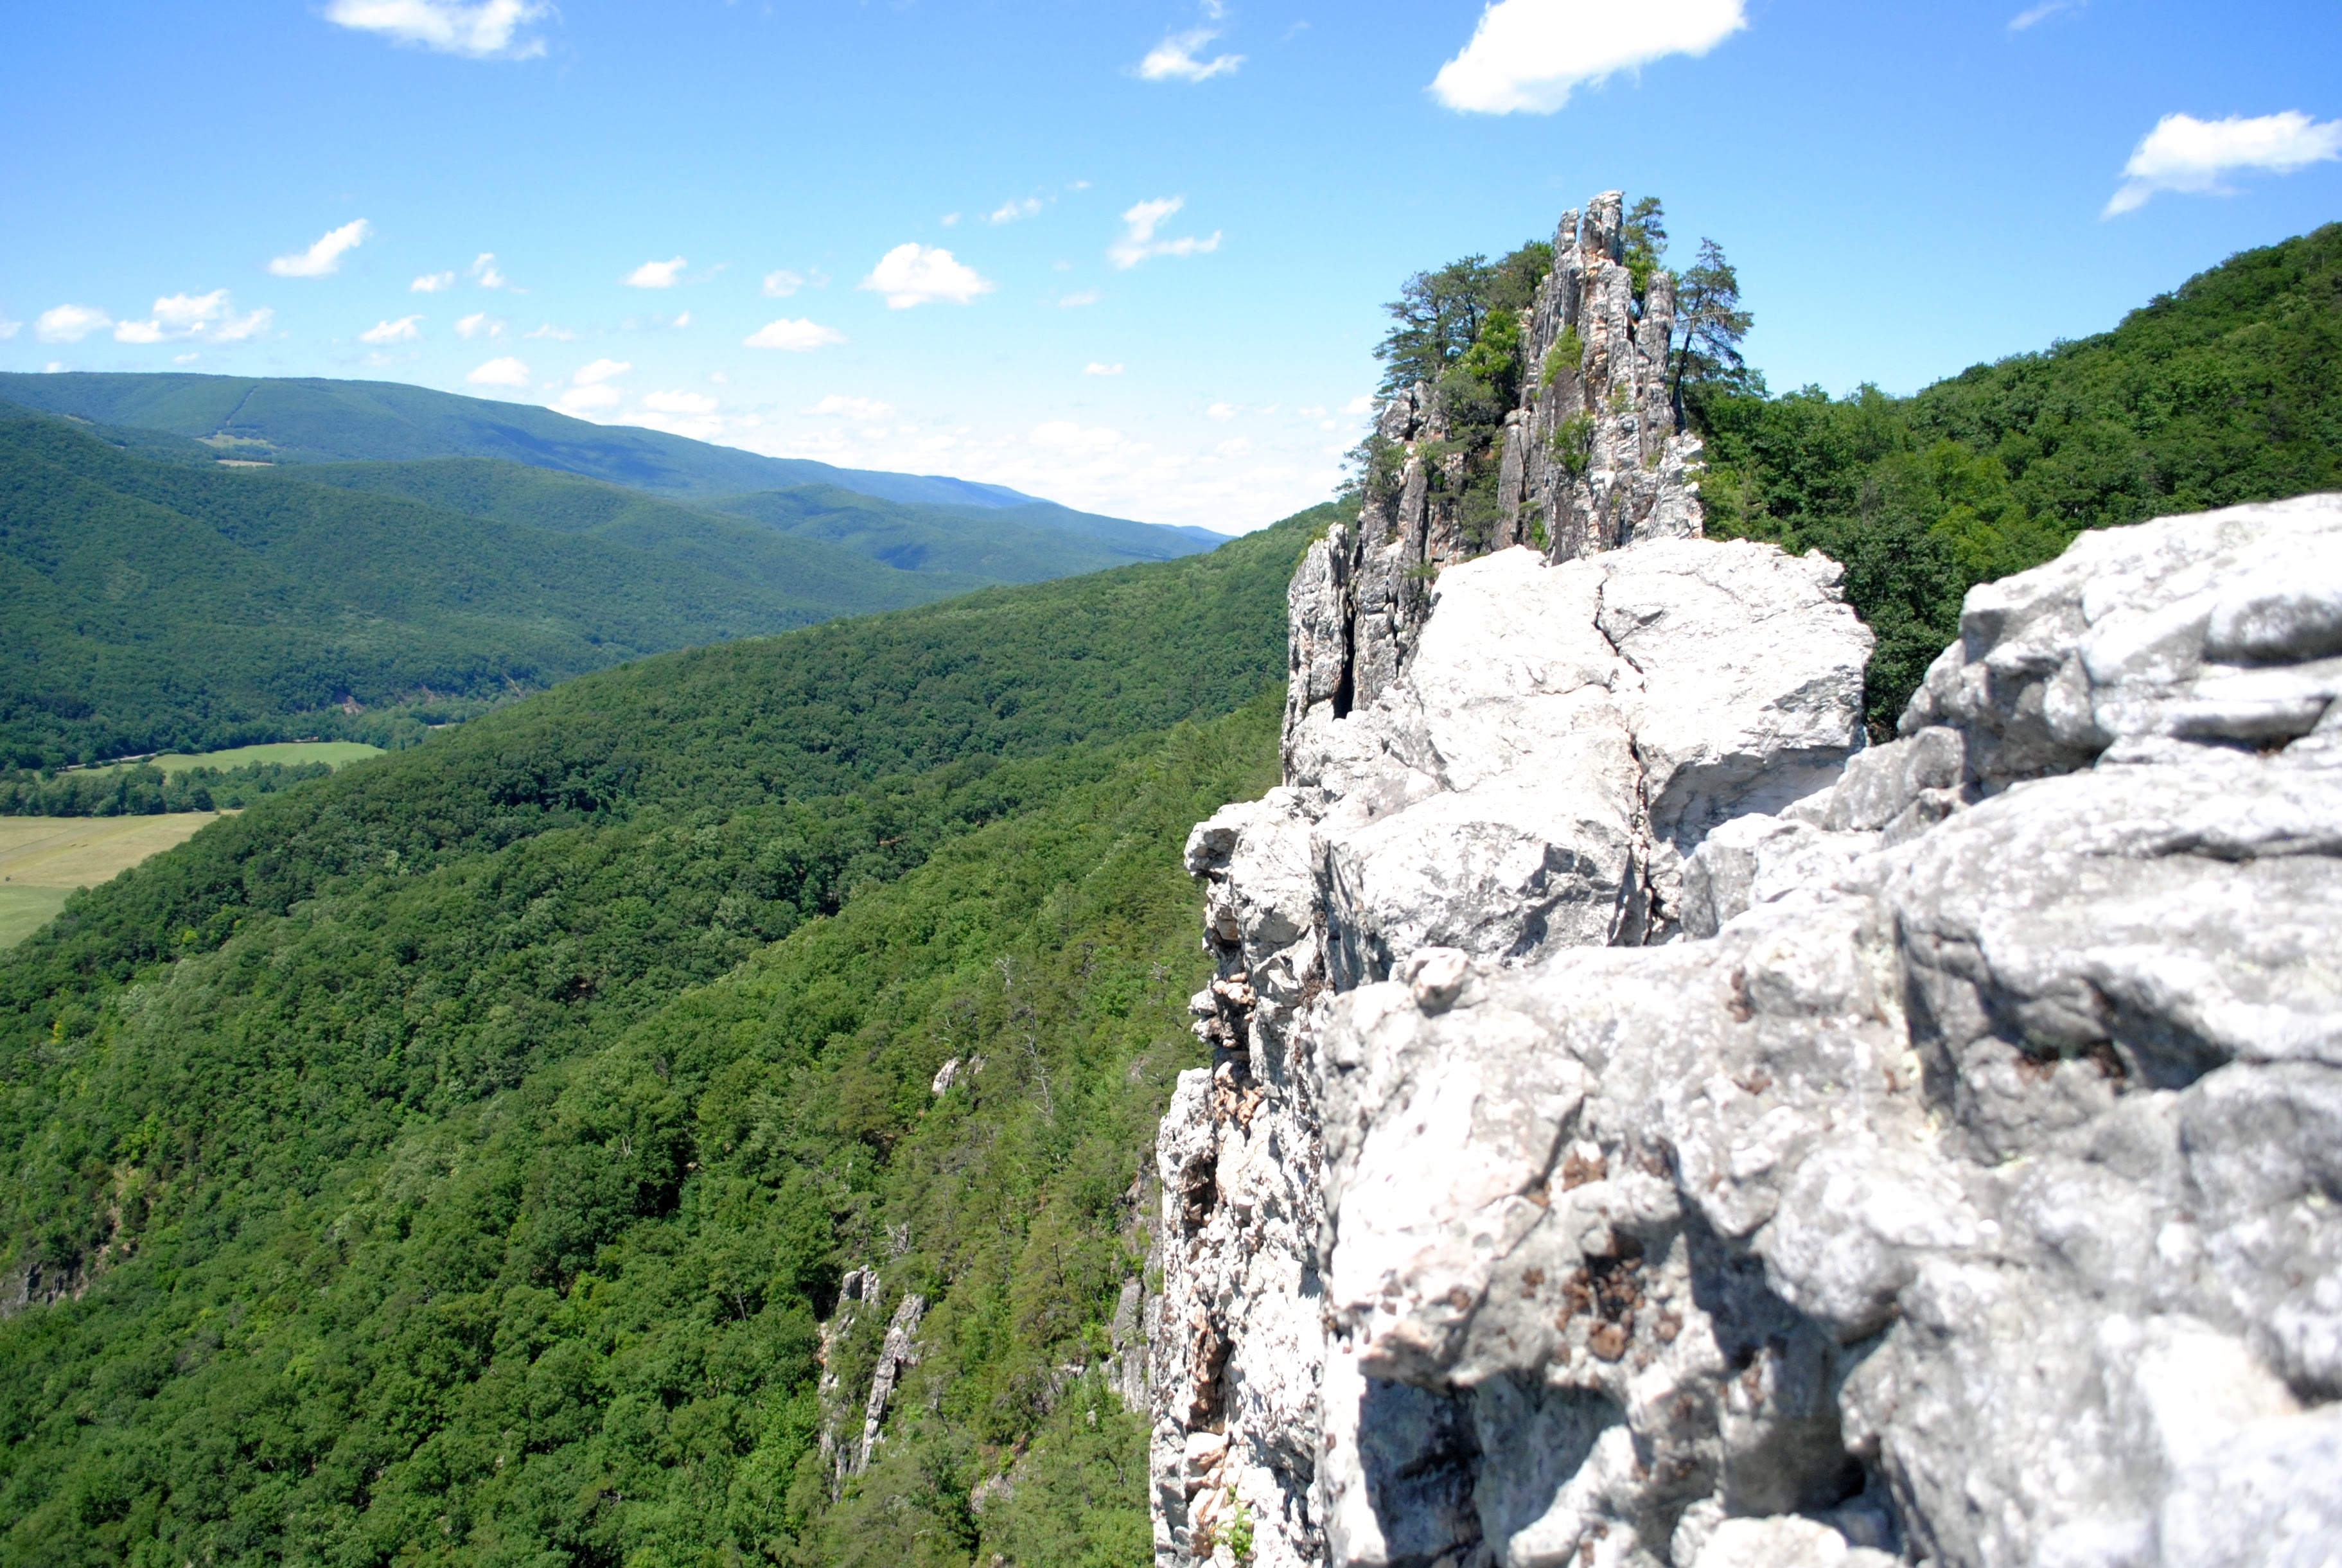 Seneca Rocks, where escaping civilization is possible.